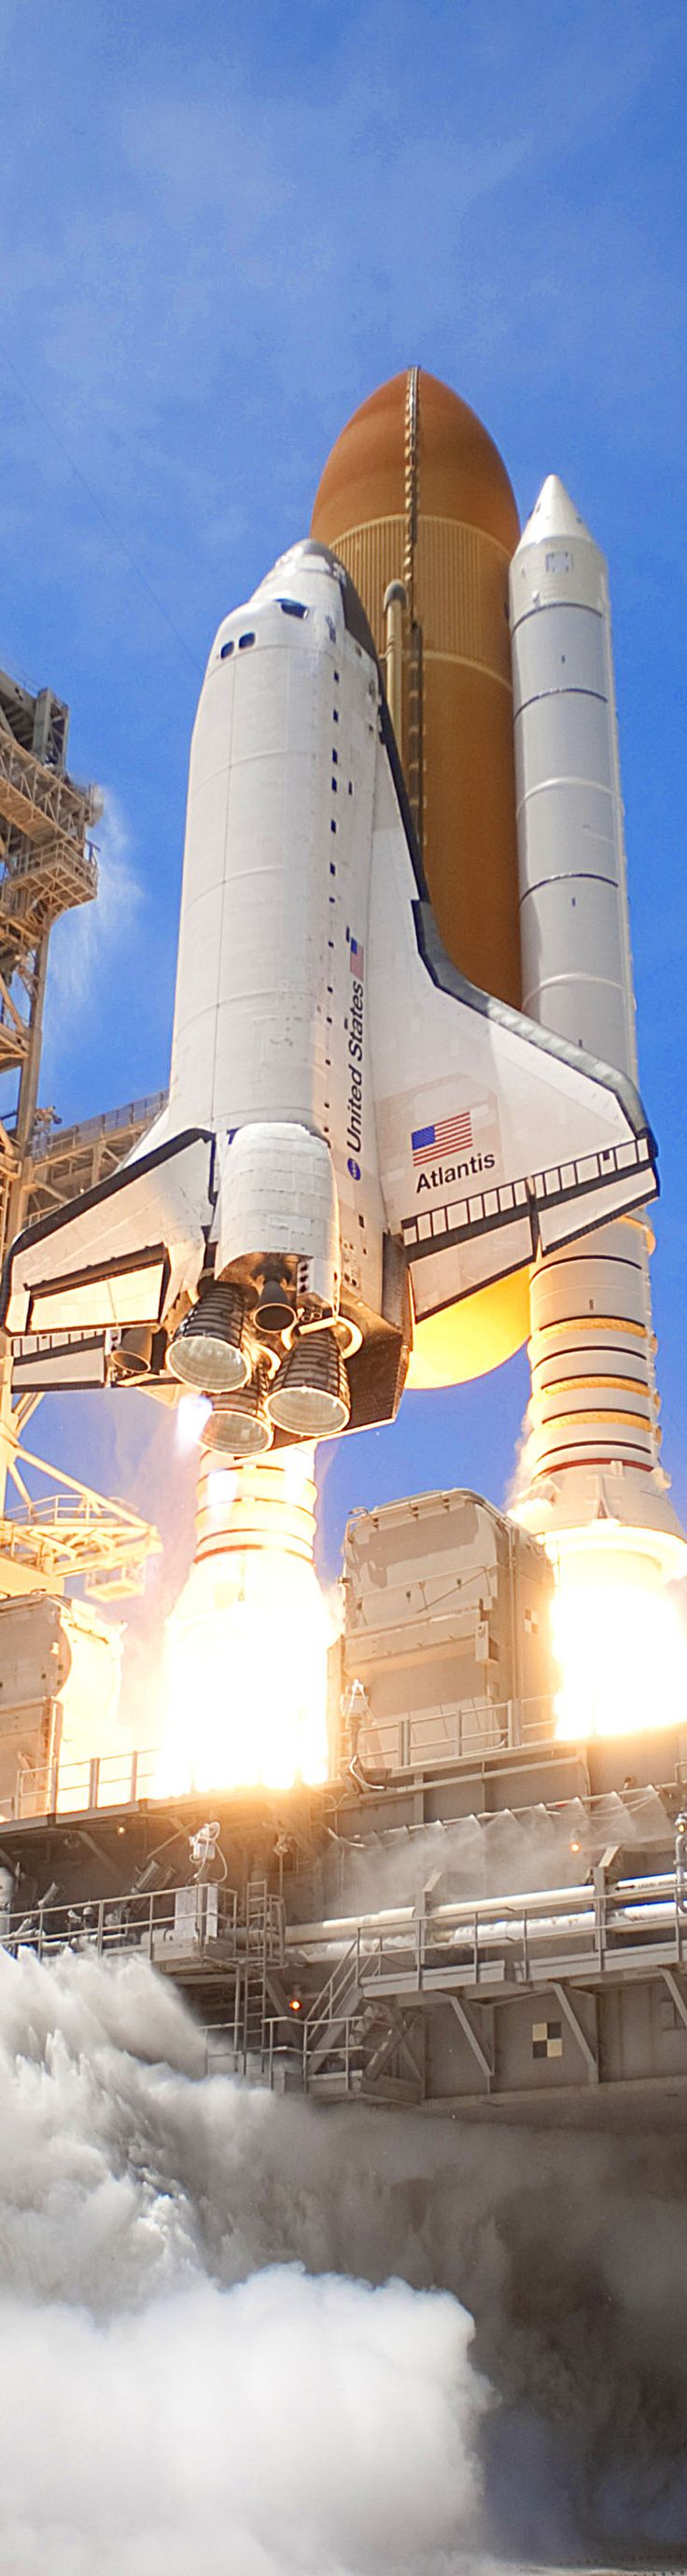 I would love to take pictures of the space shuttle launch